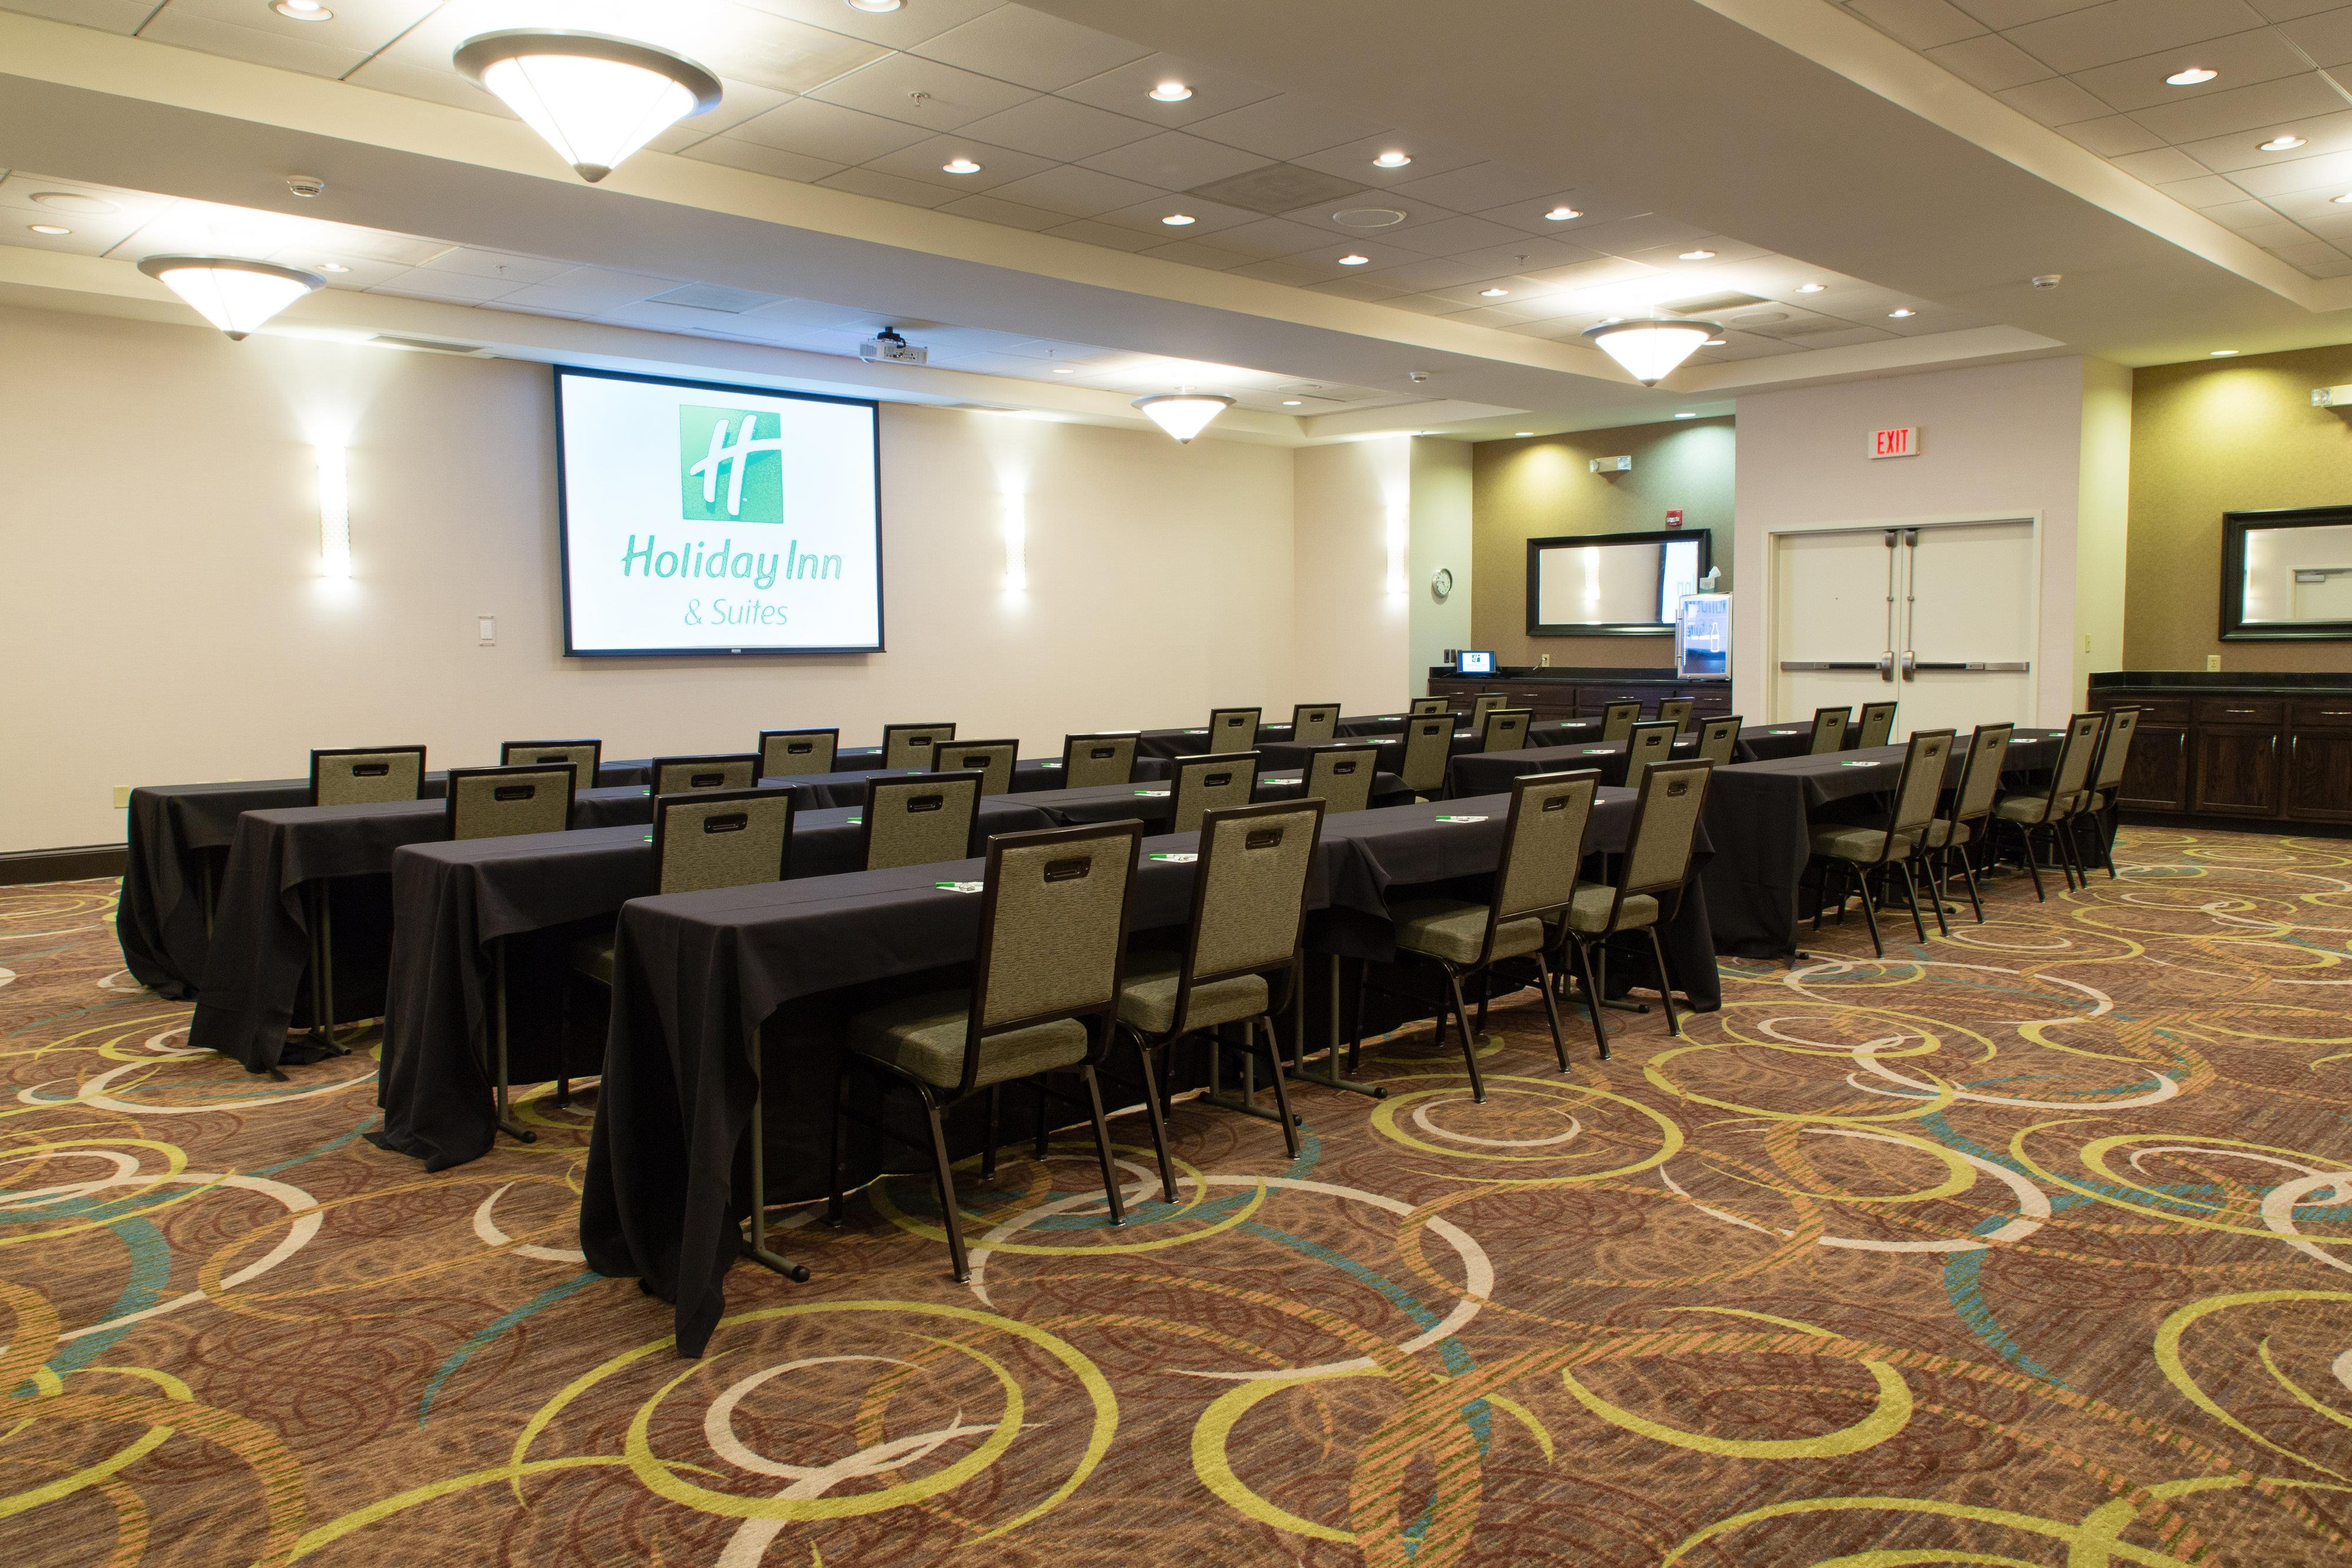 Holiday Inn & Suites - Marie Litta Conference Room